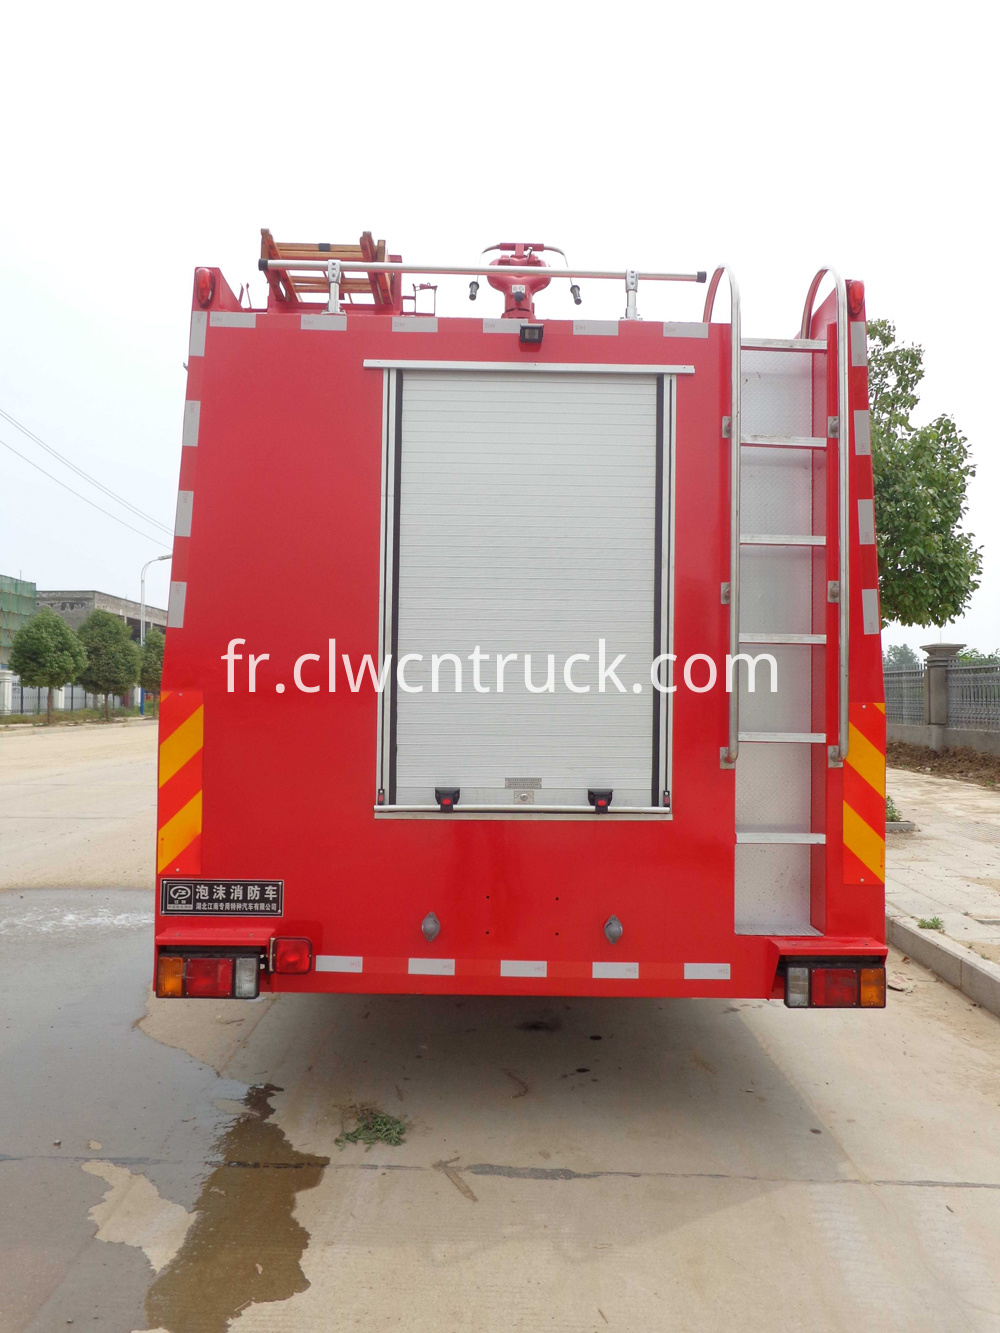 foam sprayer truck 3